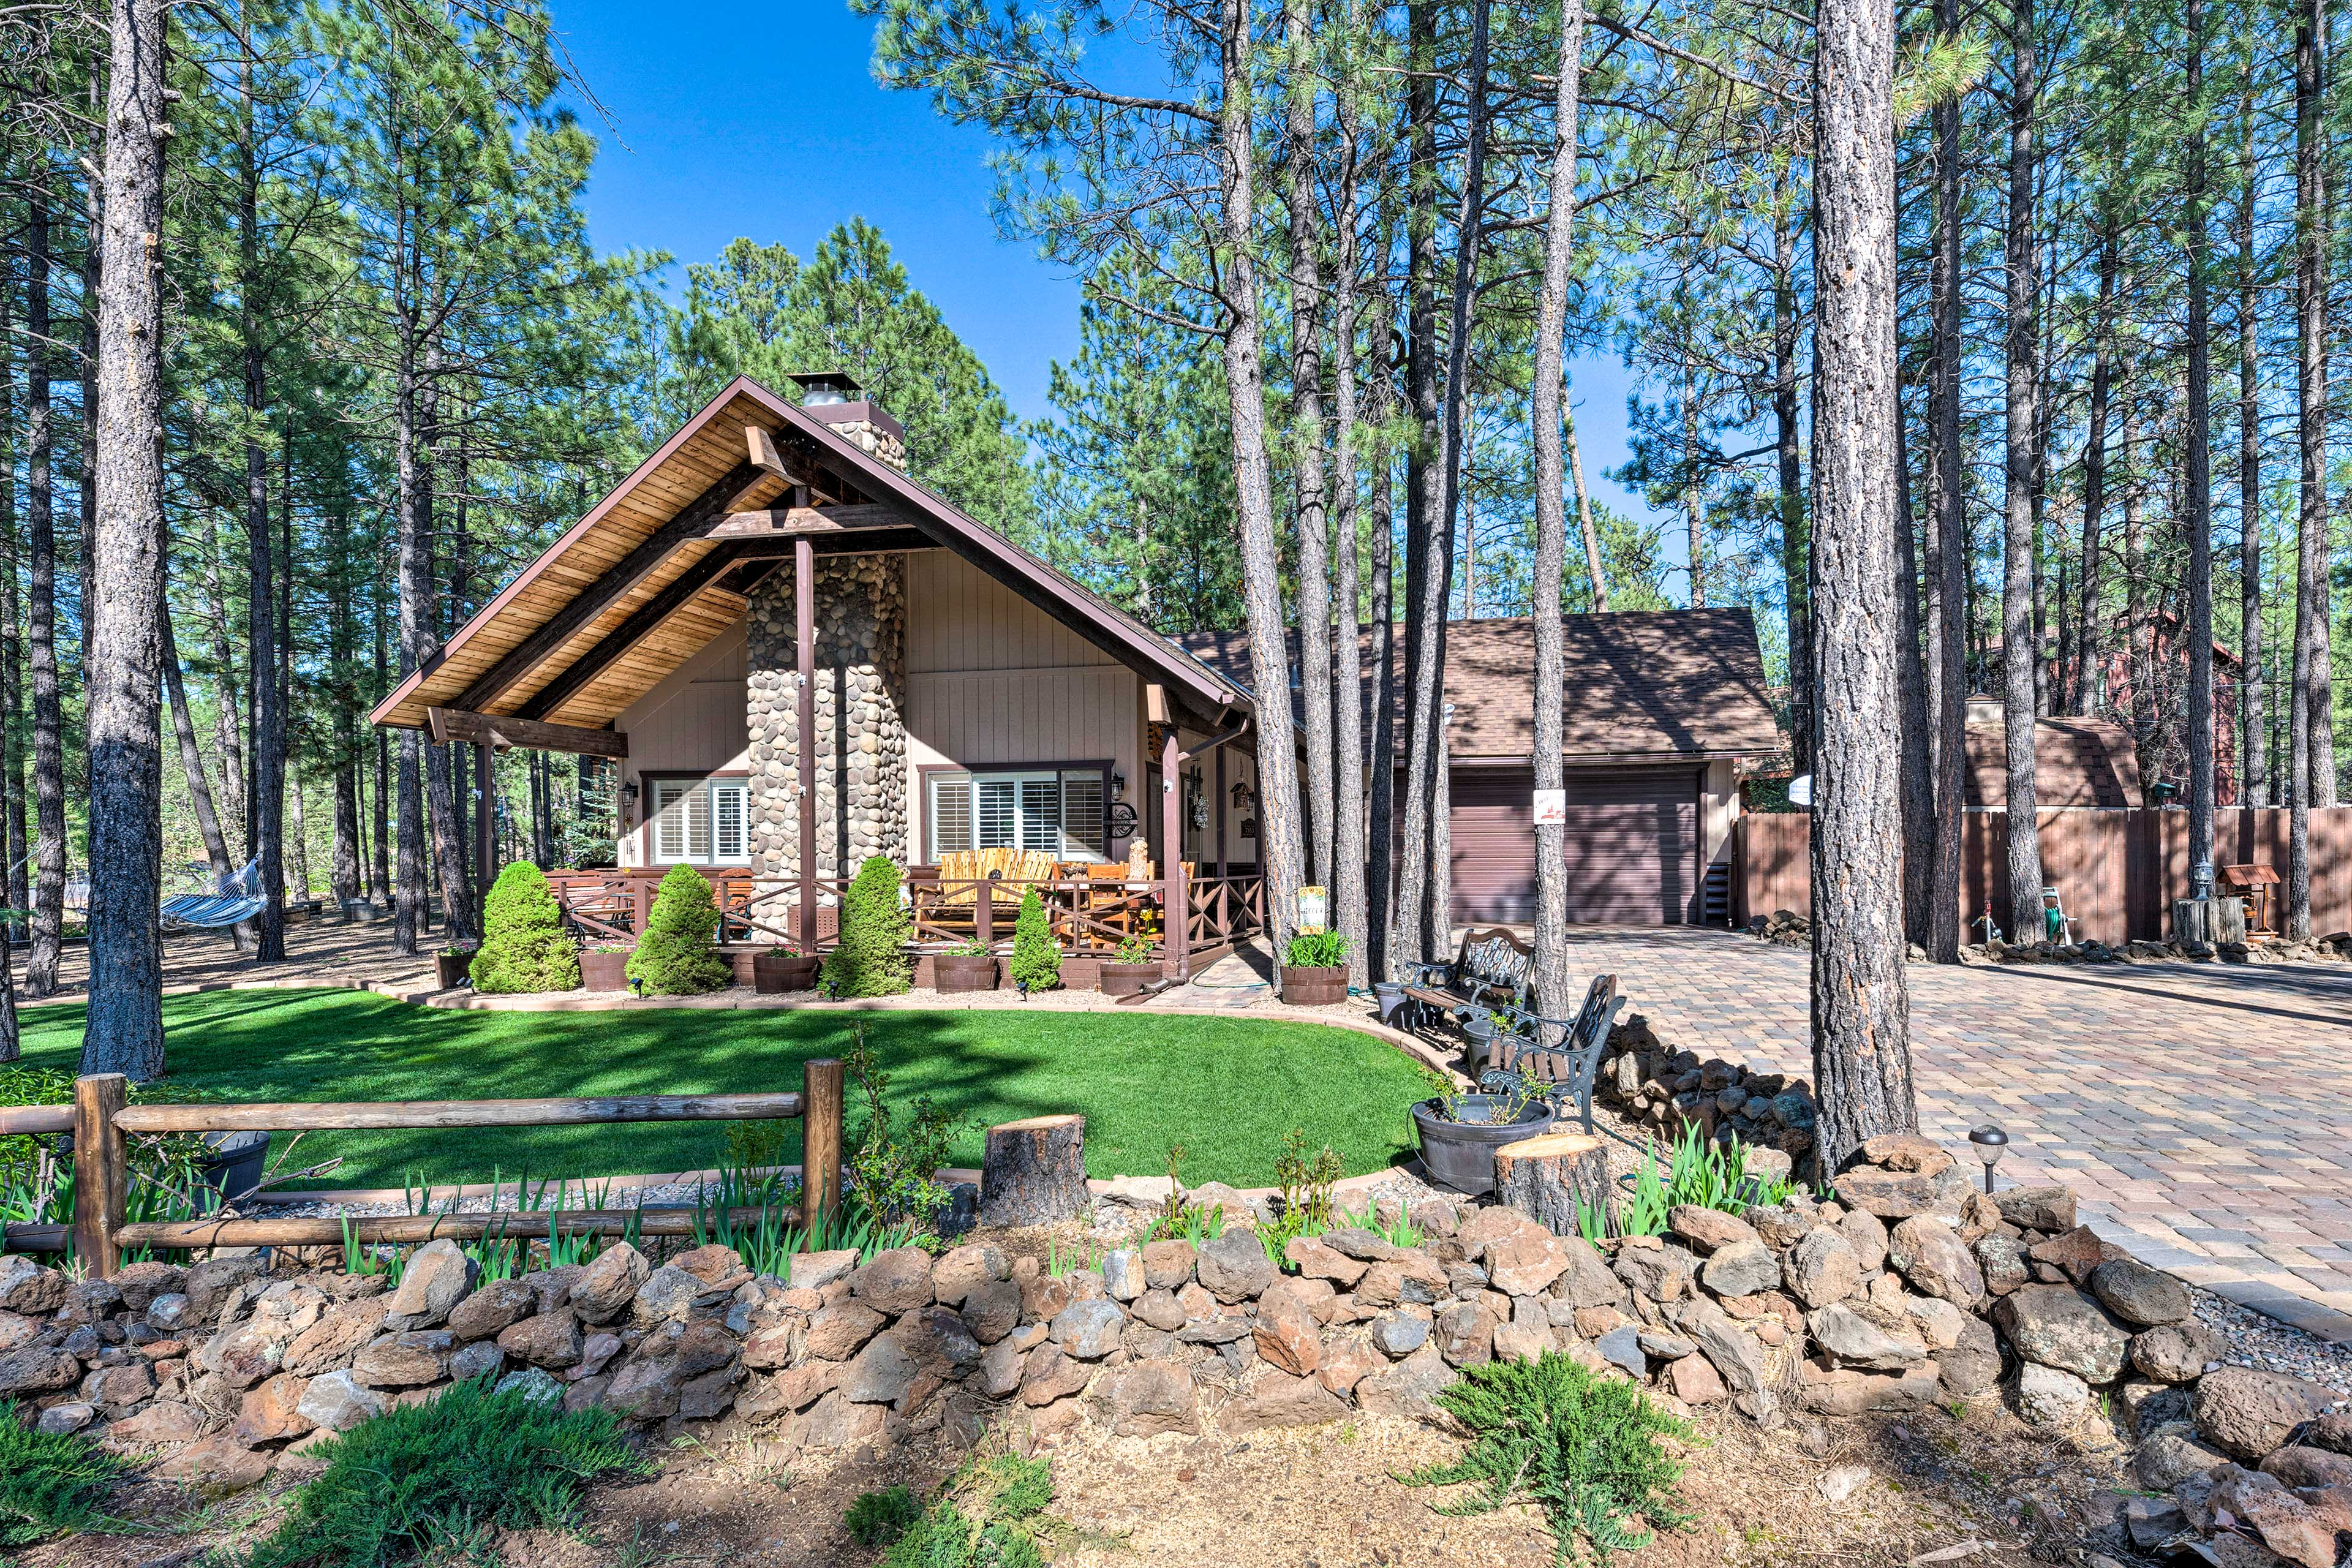 Book a getaway to this vacation rental!